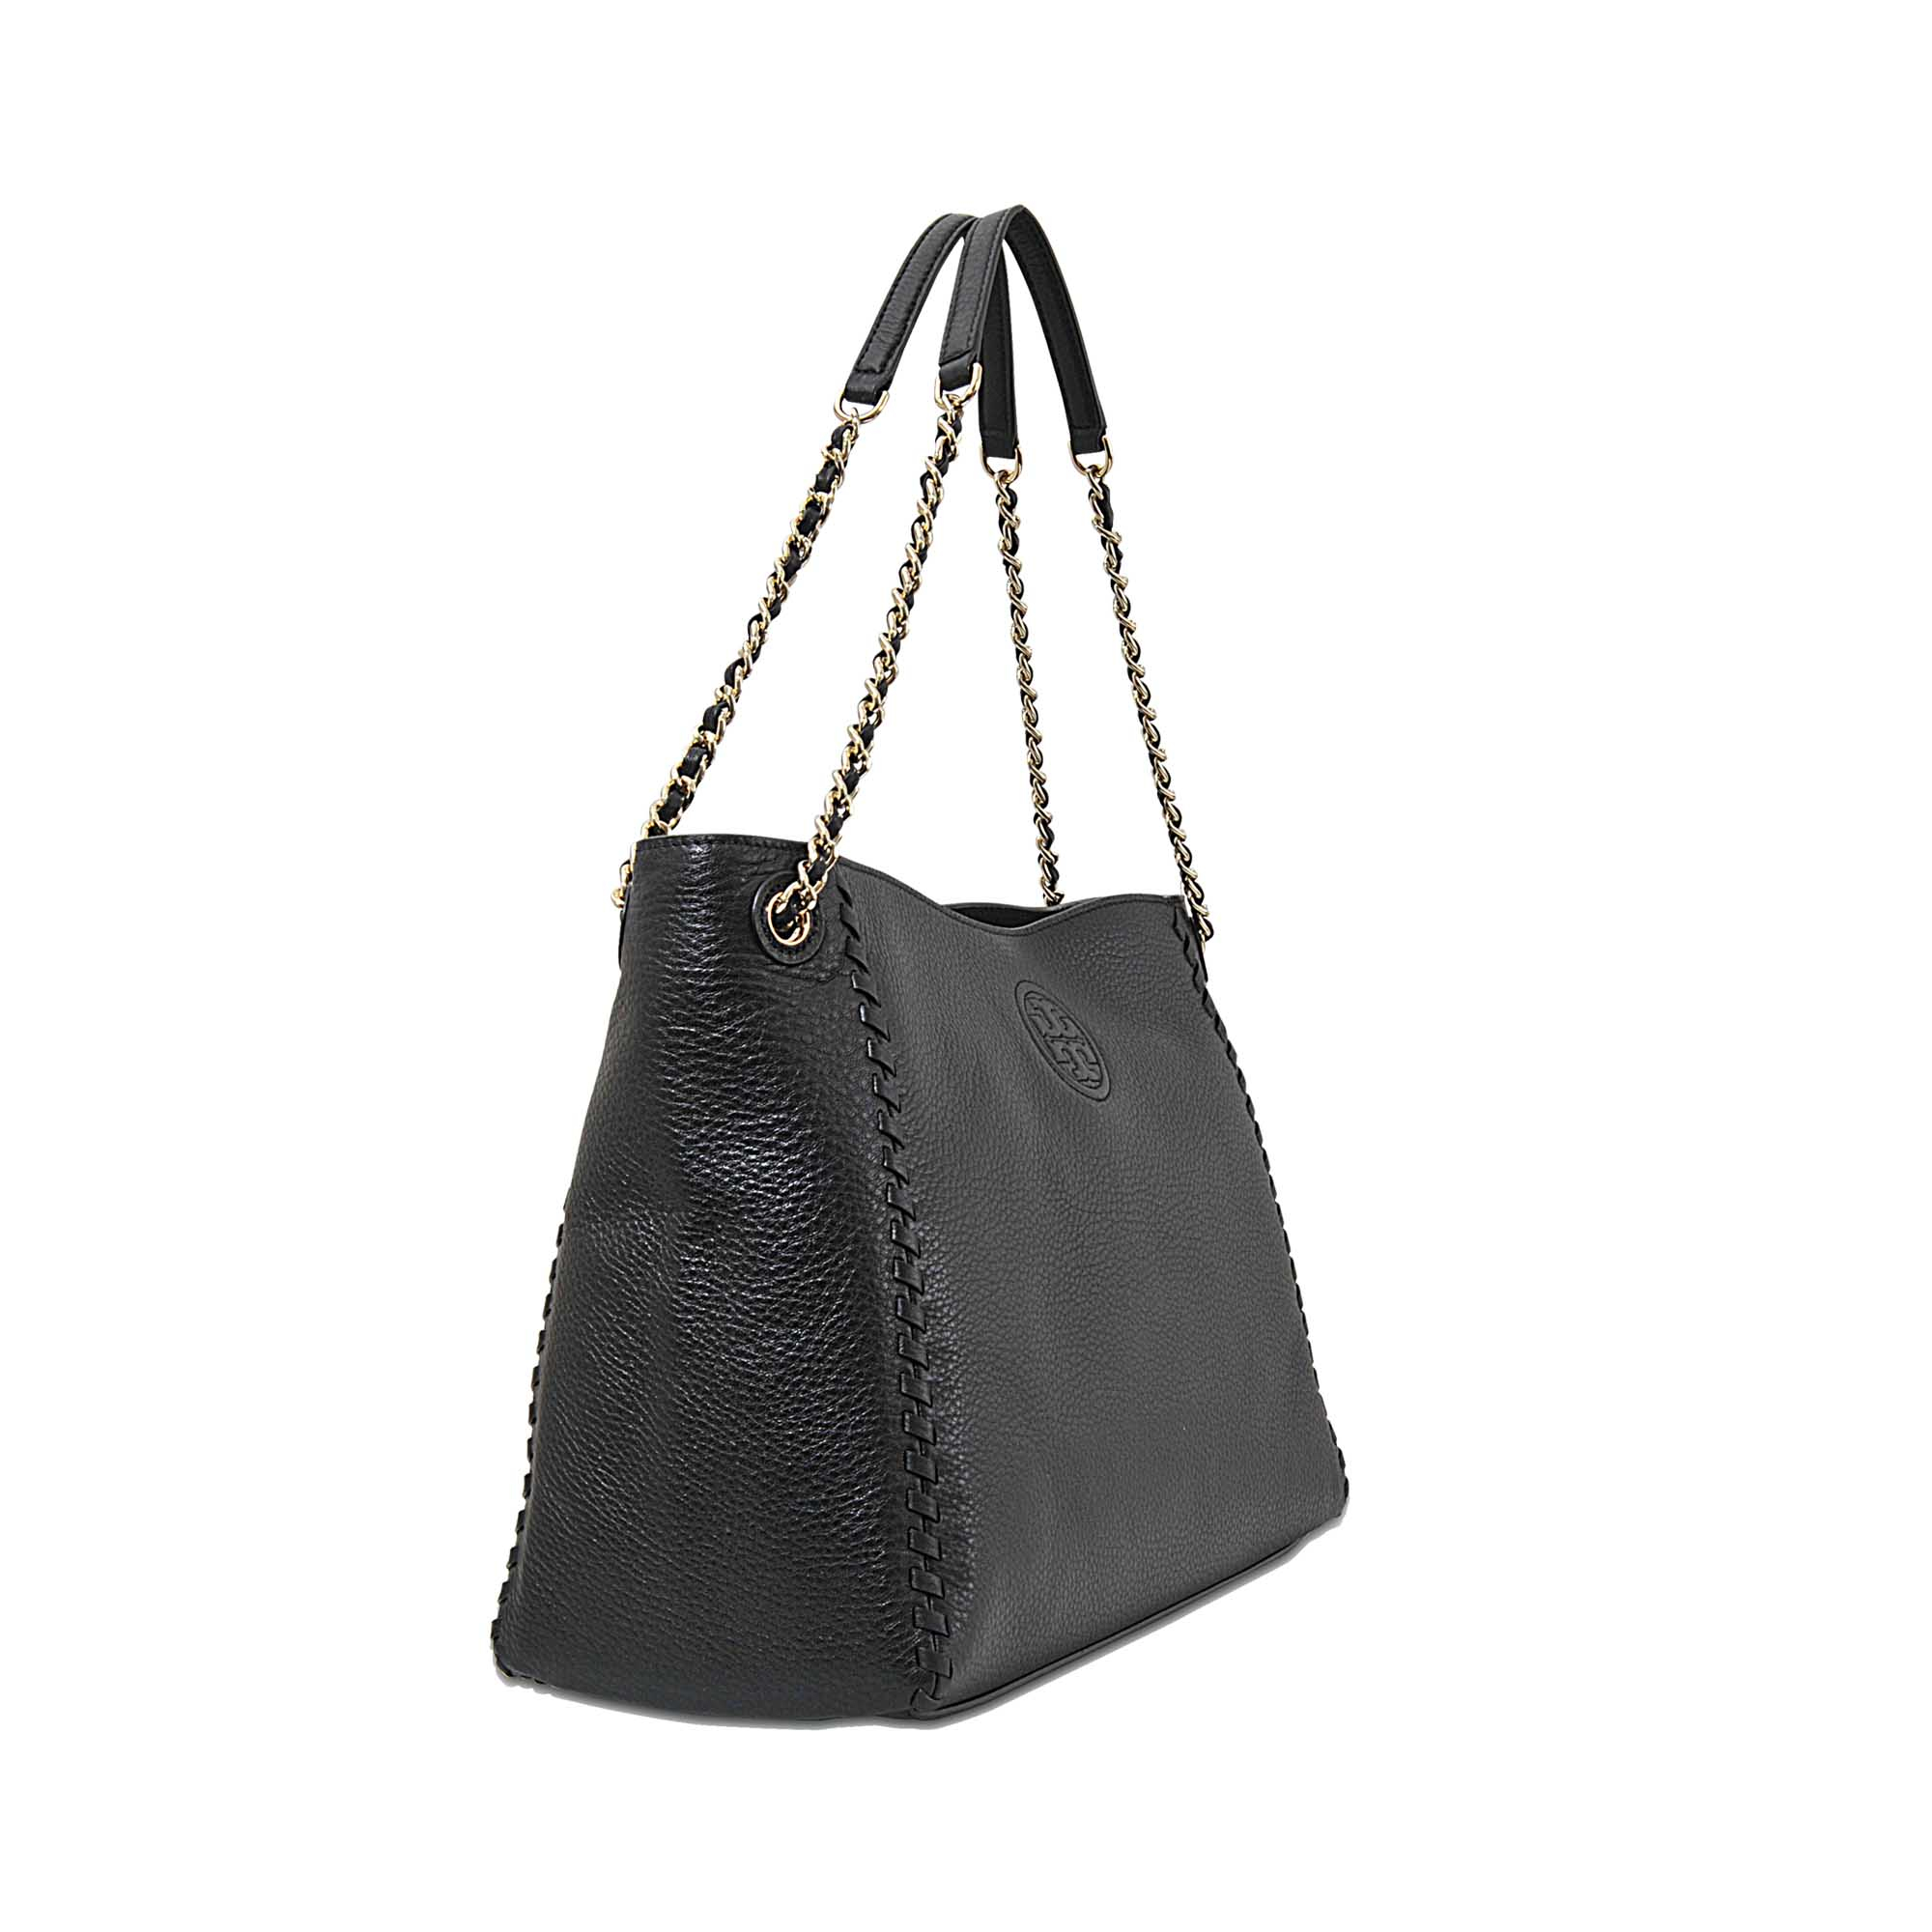 Tory Burch Marion Chain Shoulder Slouchy Tote In Black Lyst